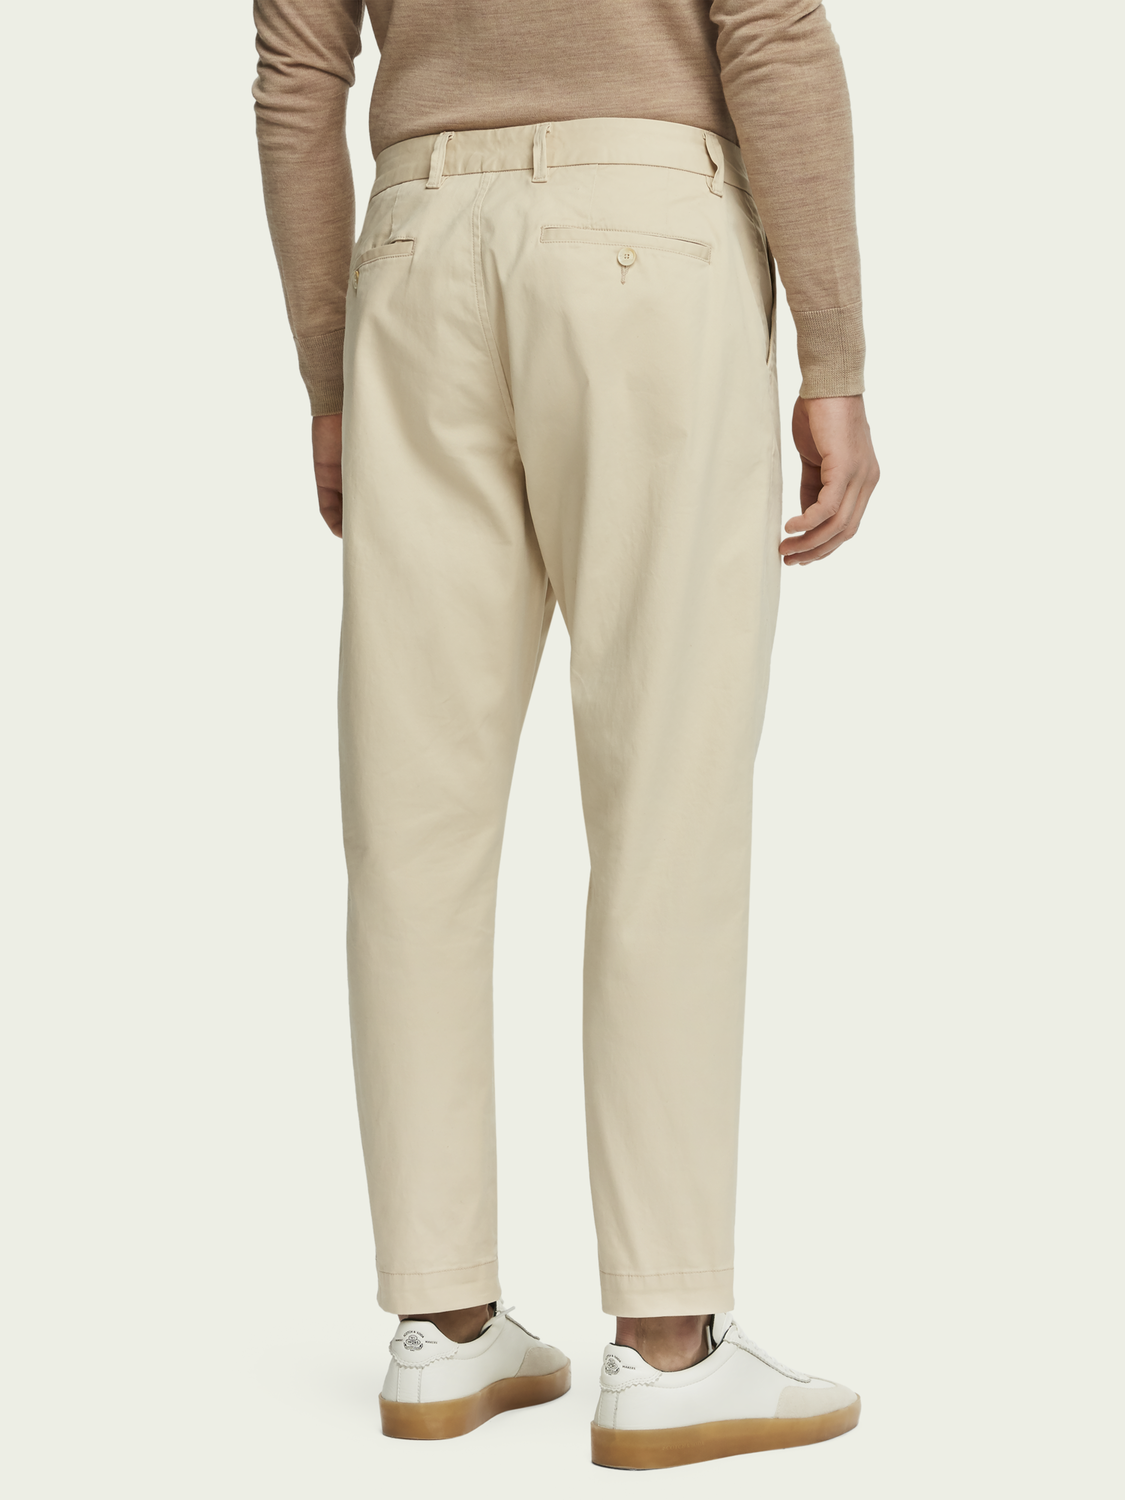 Men Fave - Organic Twill Chinos | Regular tapered fit